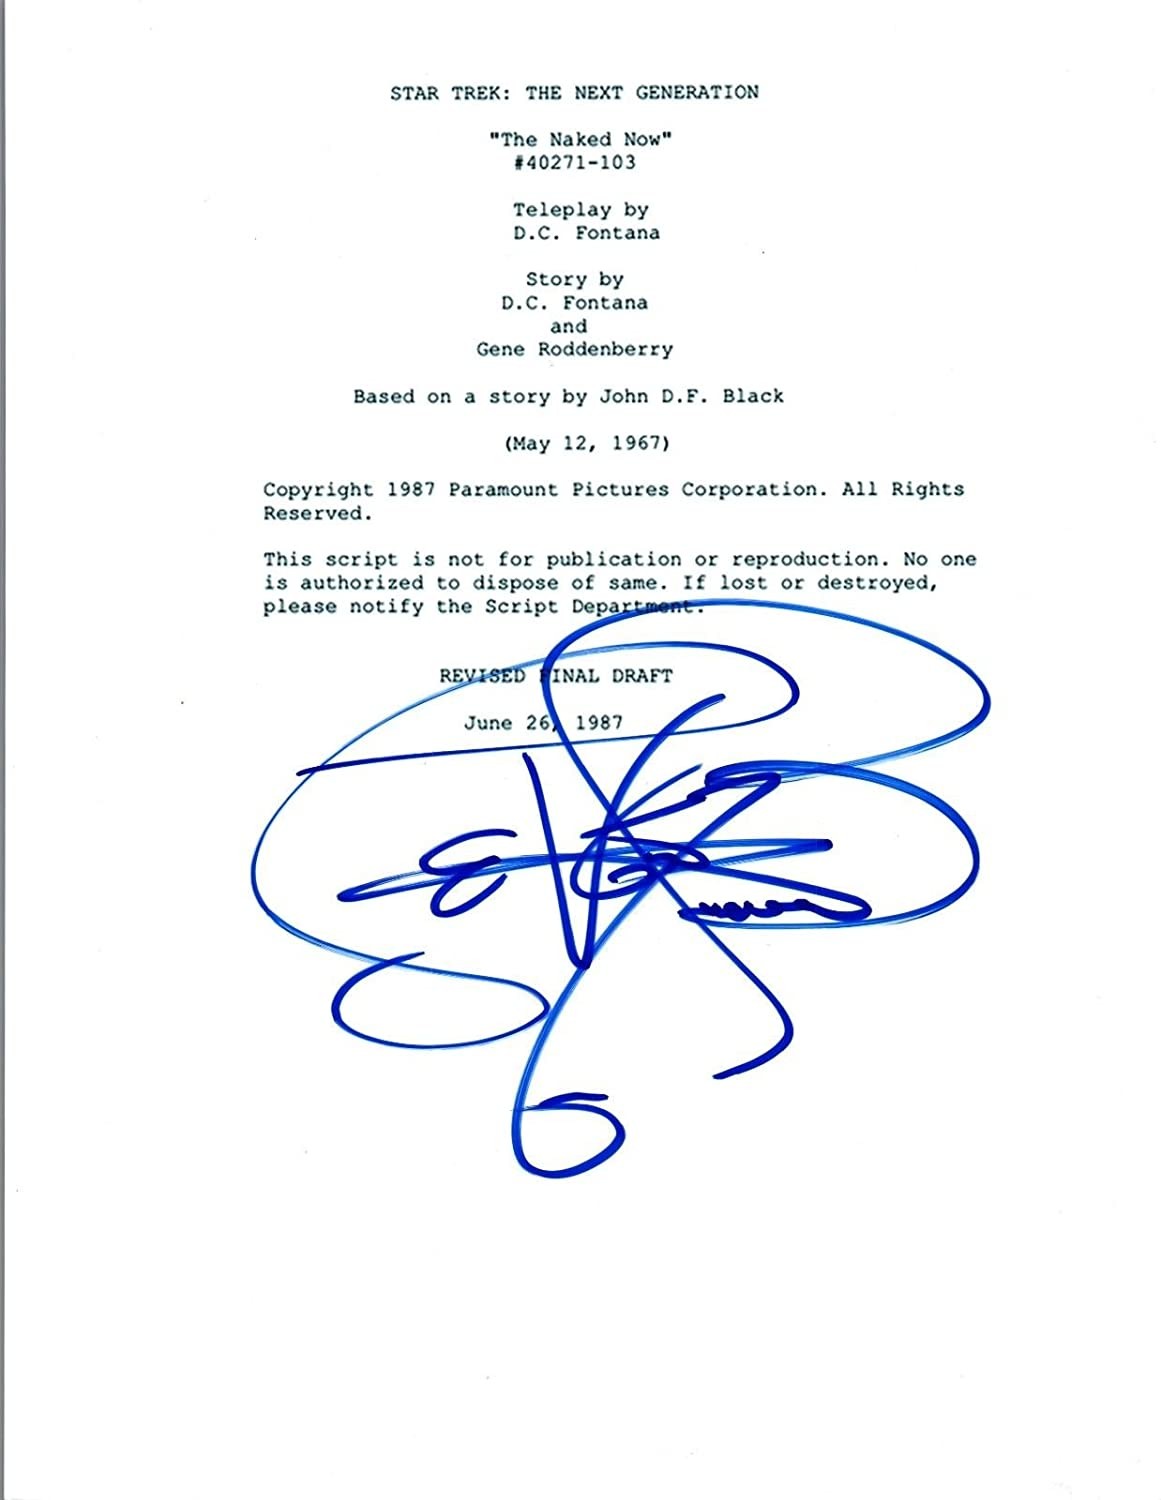 LeVar Burton Signed Autograph STAR TREK THE NEXT GENERATION Episode Script COA Unbranded